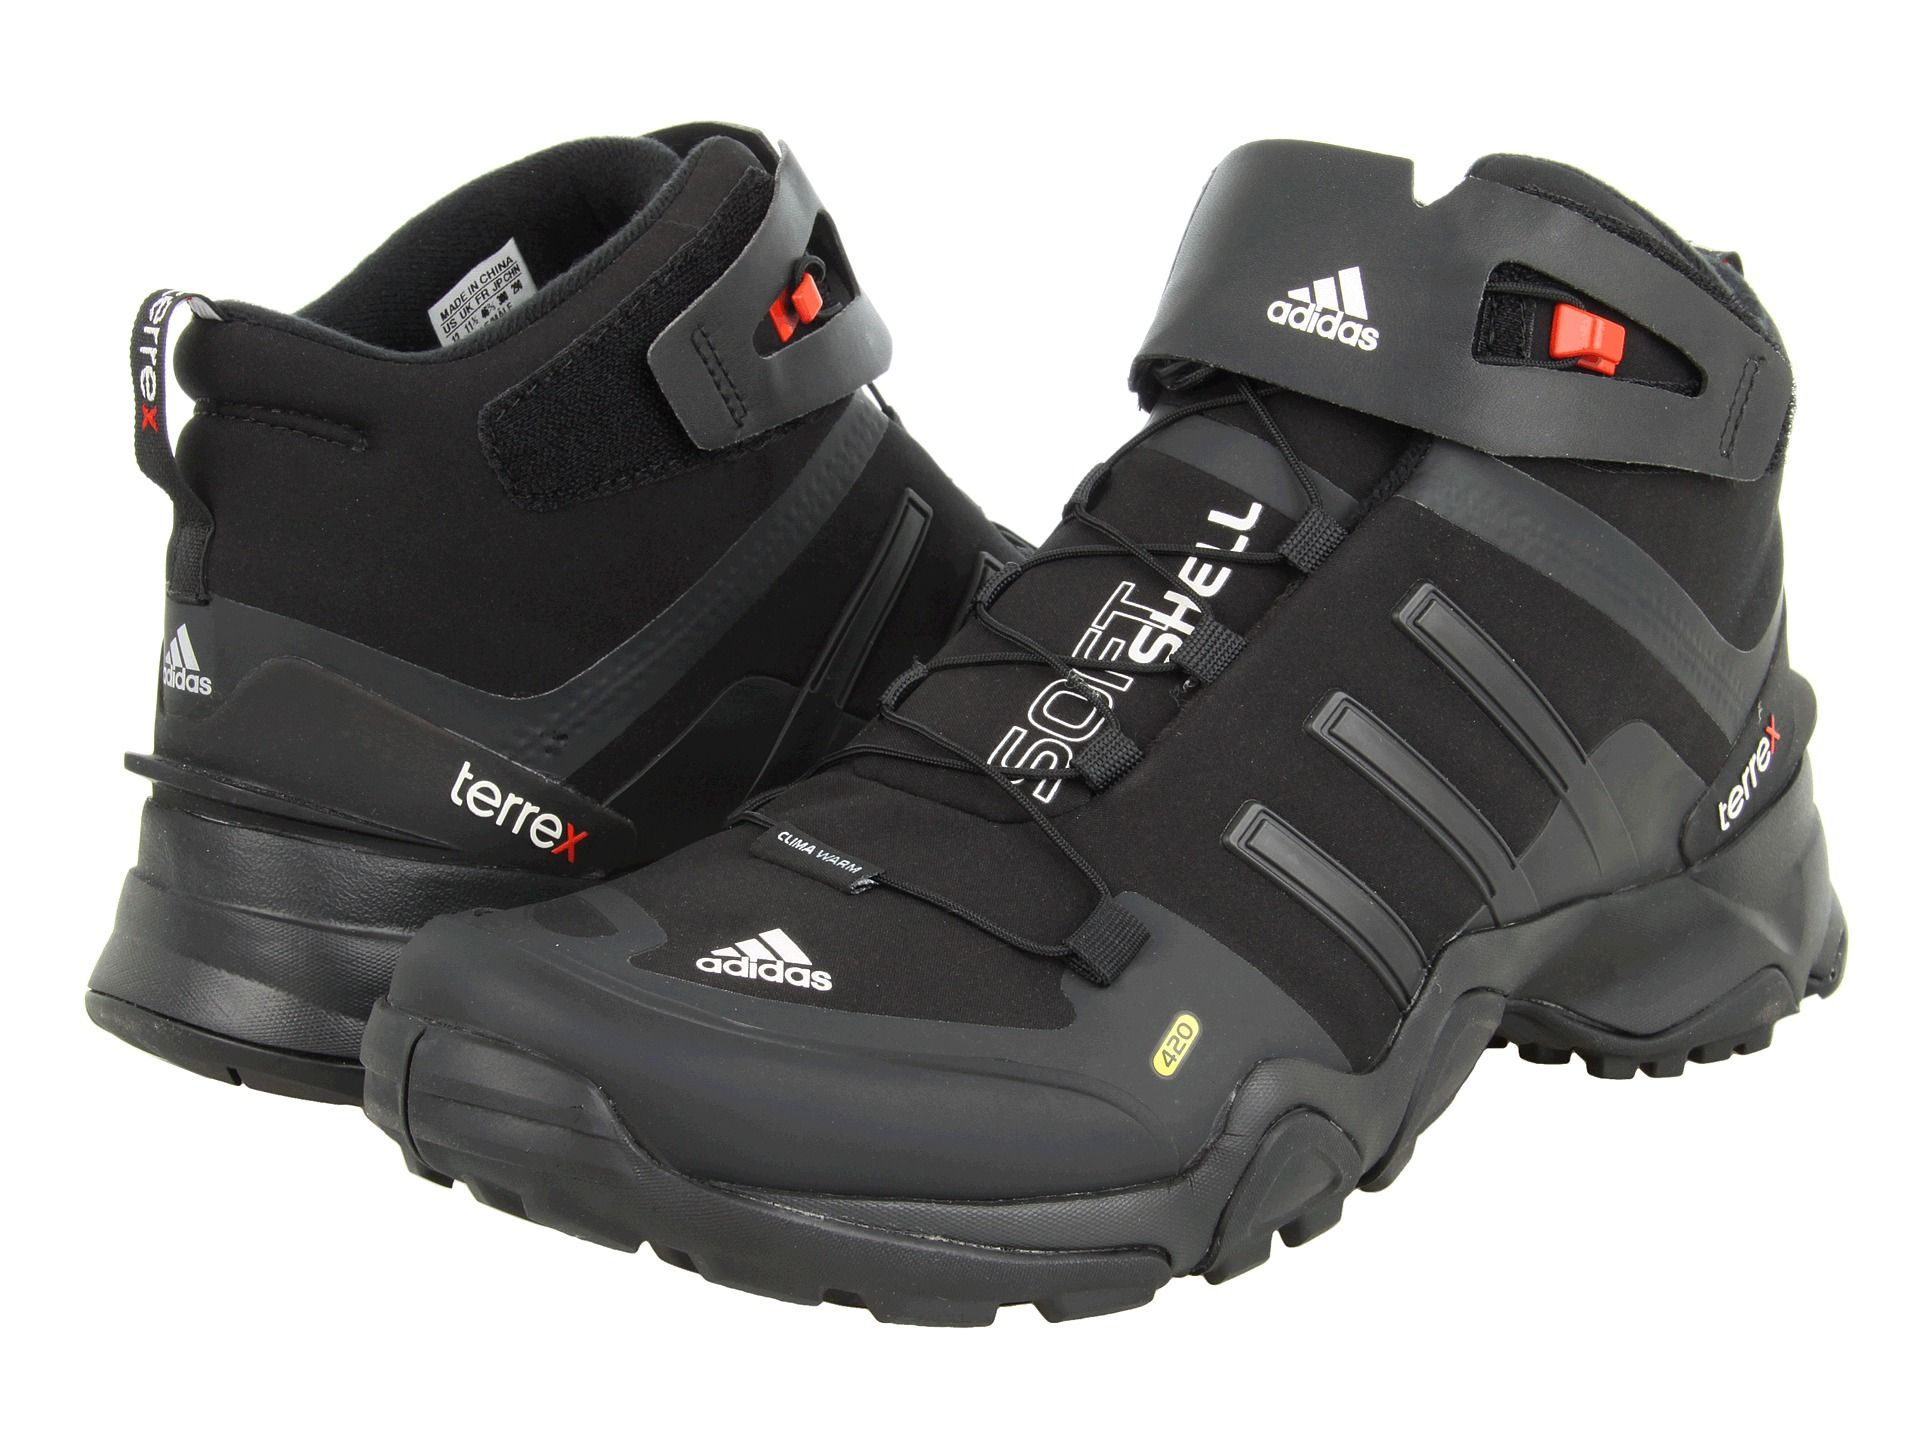 reputable site c438c a3ec5 adidas Outdoor Terrex Softshell Mid Black1BlackCore Energy - Zappos.com  Free Shipping BOTH Ways